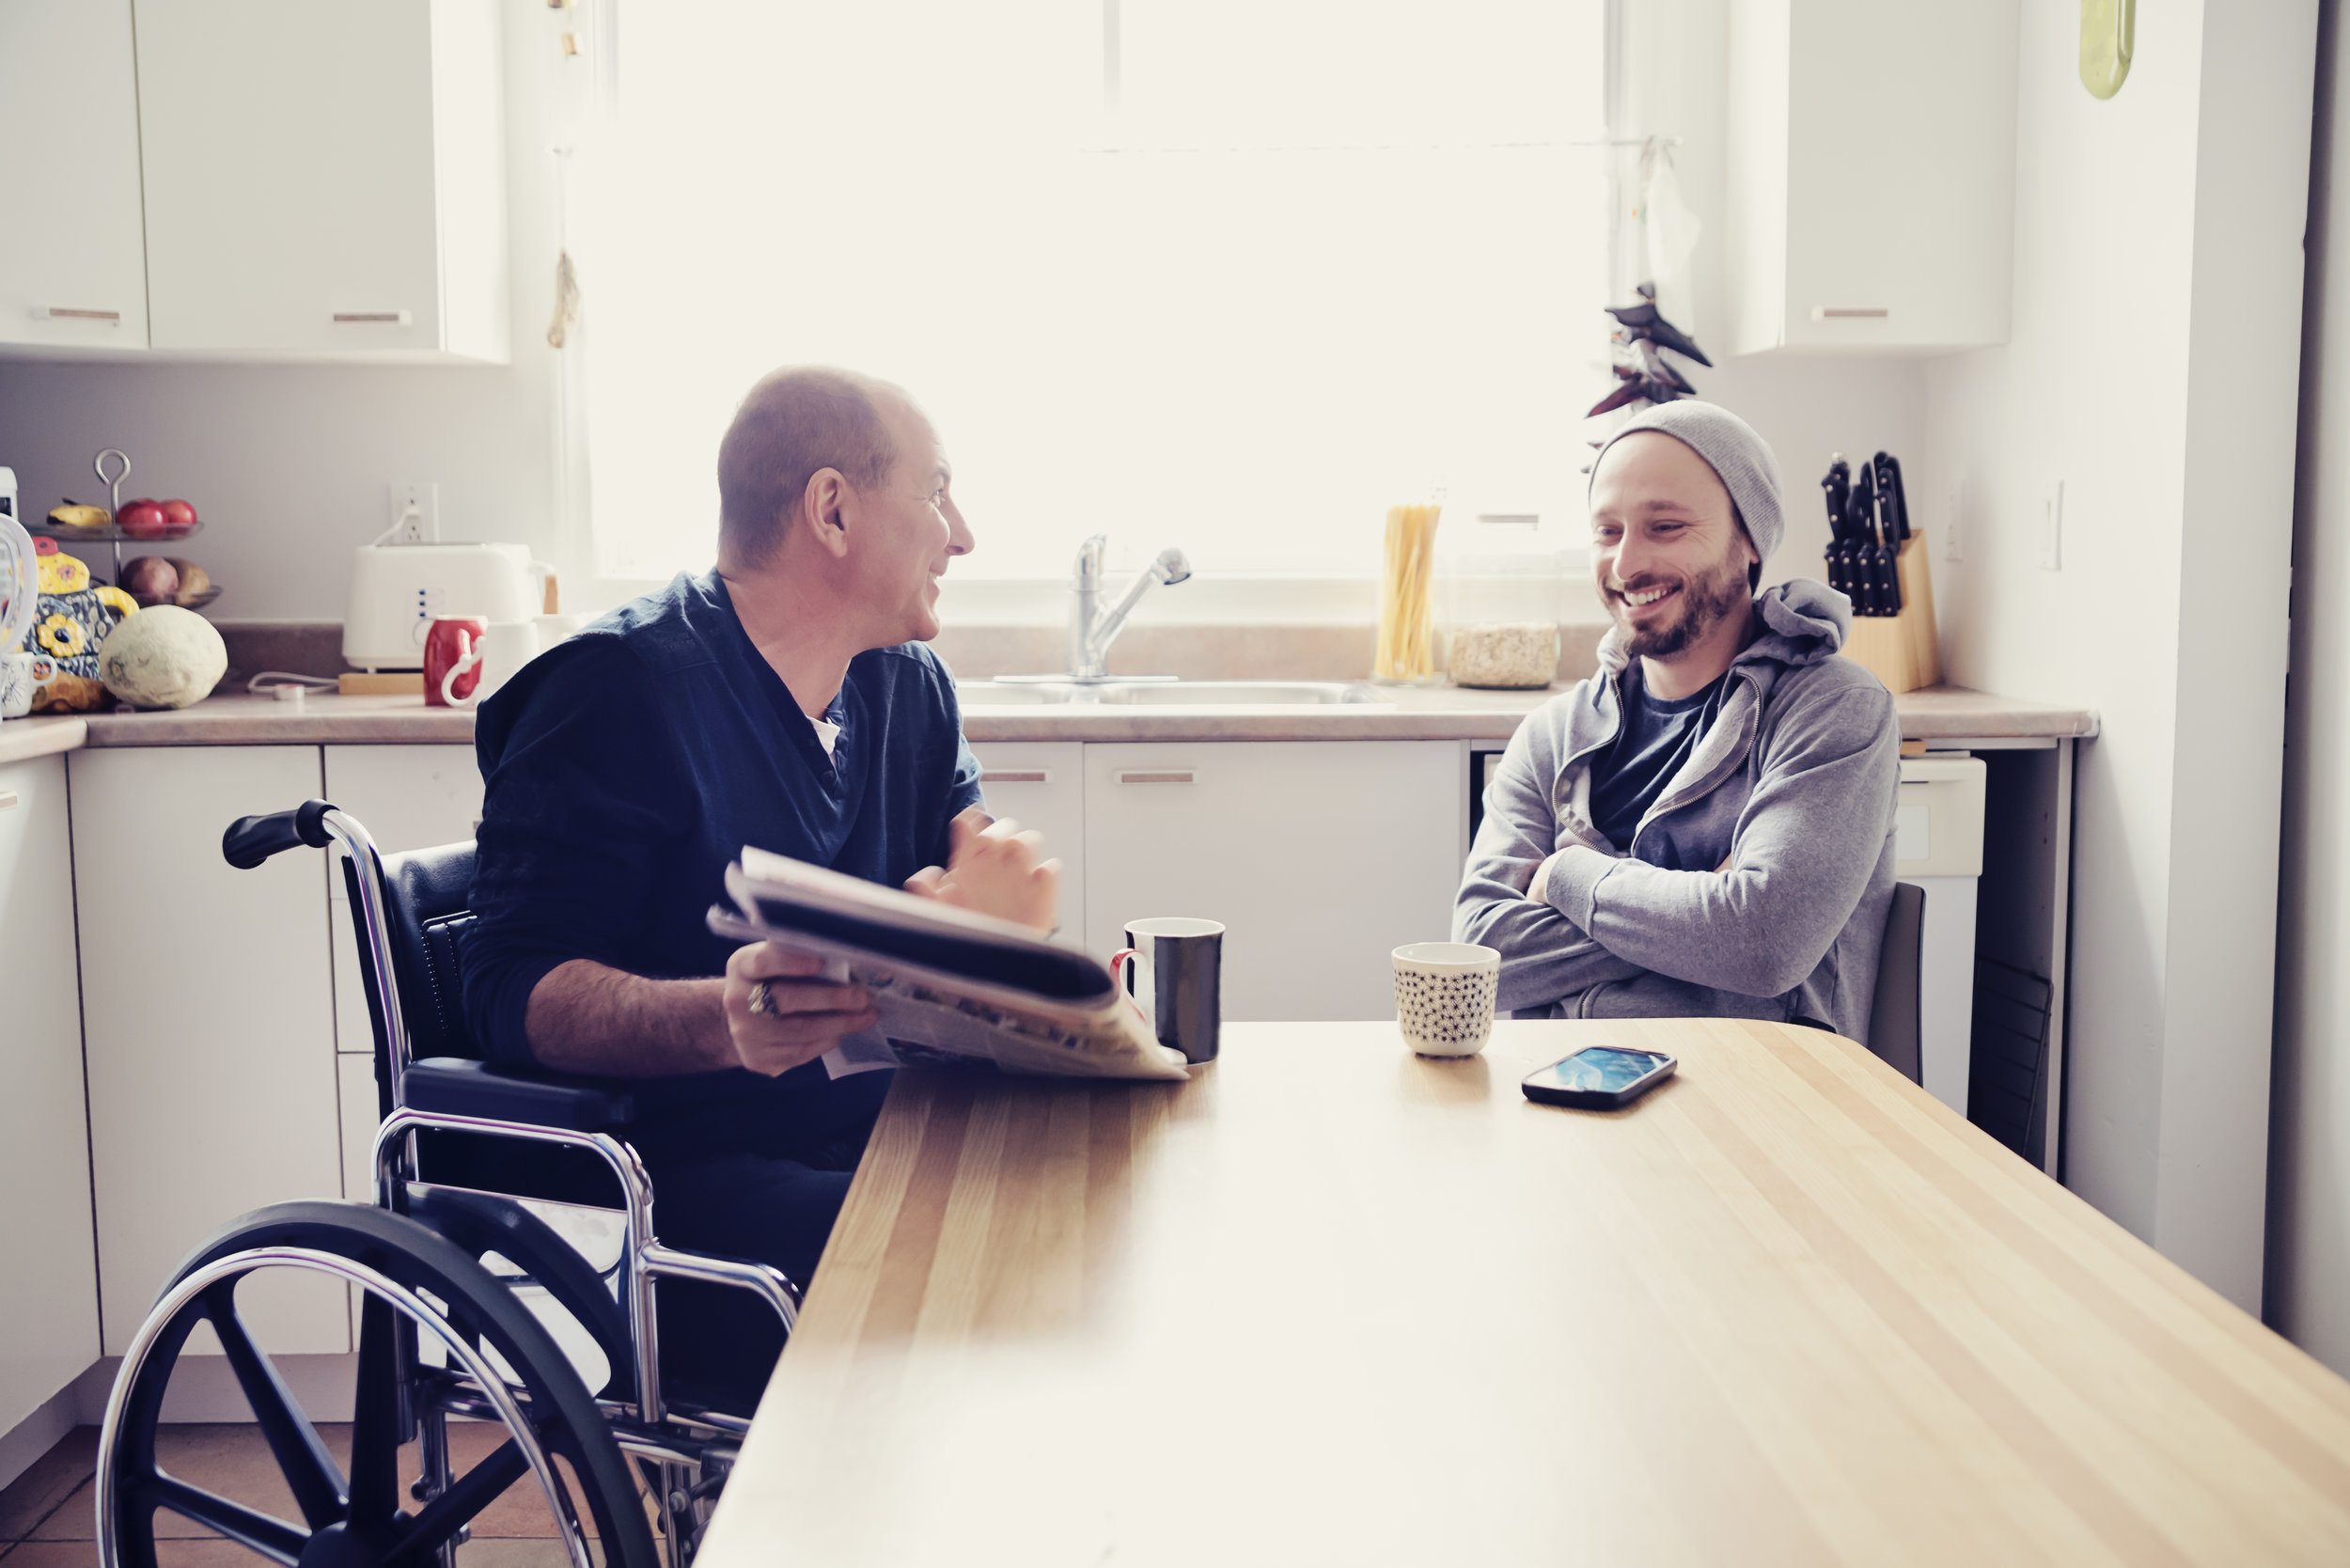 Man on a wheelchair talking and smiling to young man